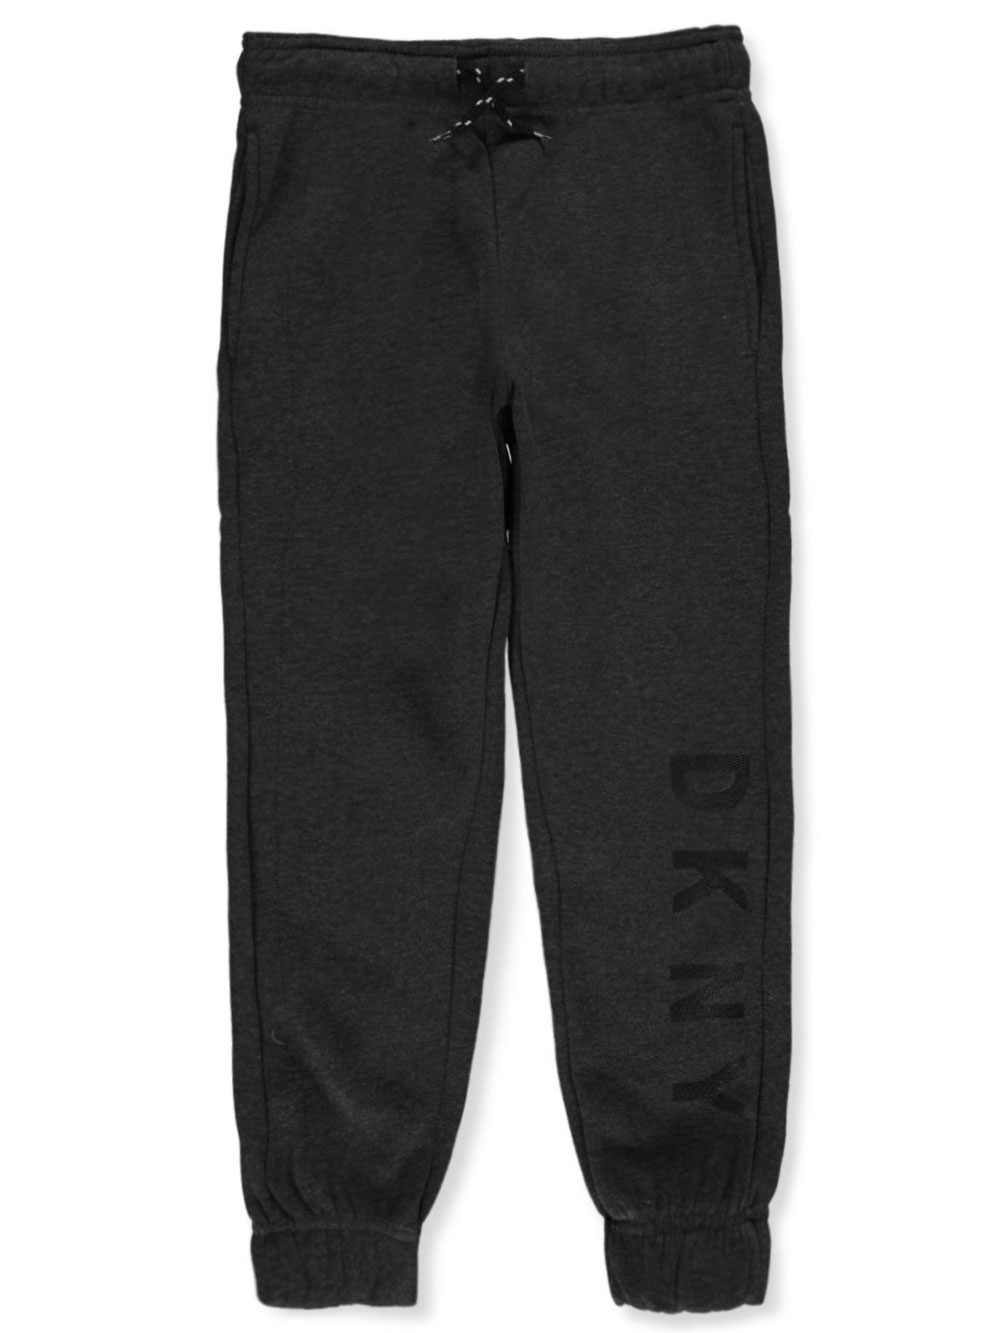 DKNY Sweatpants